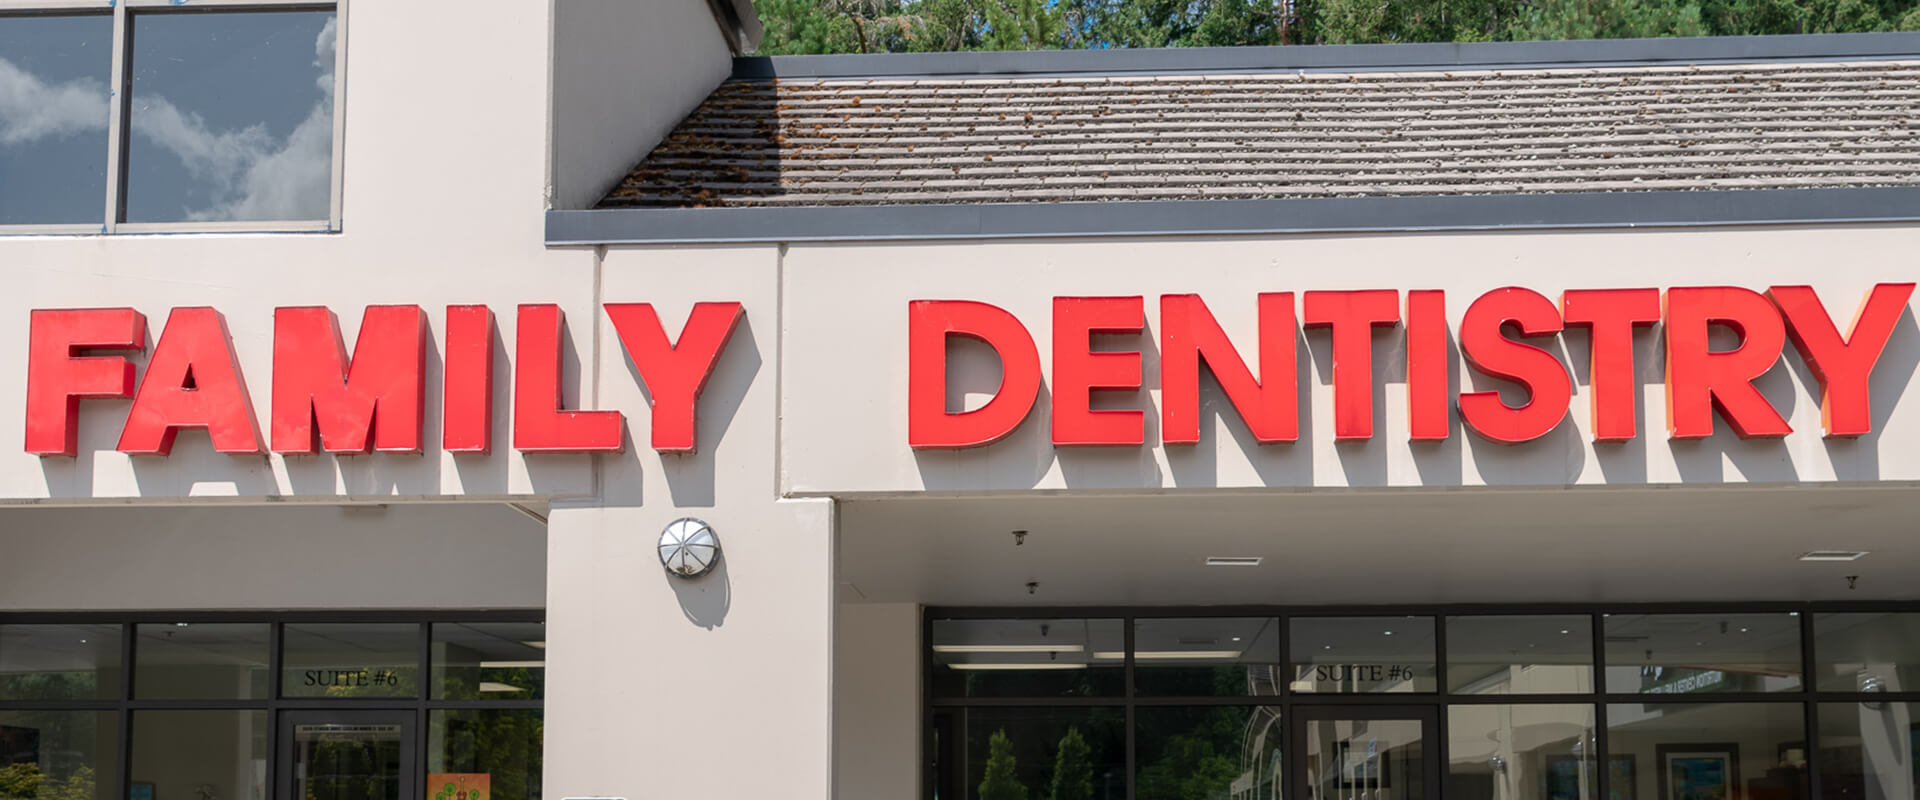 Cottage Lake Family dentistry sign